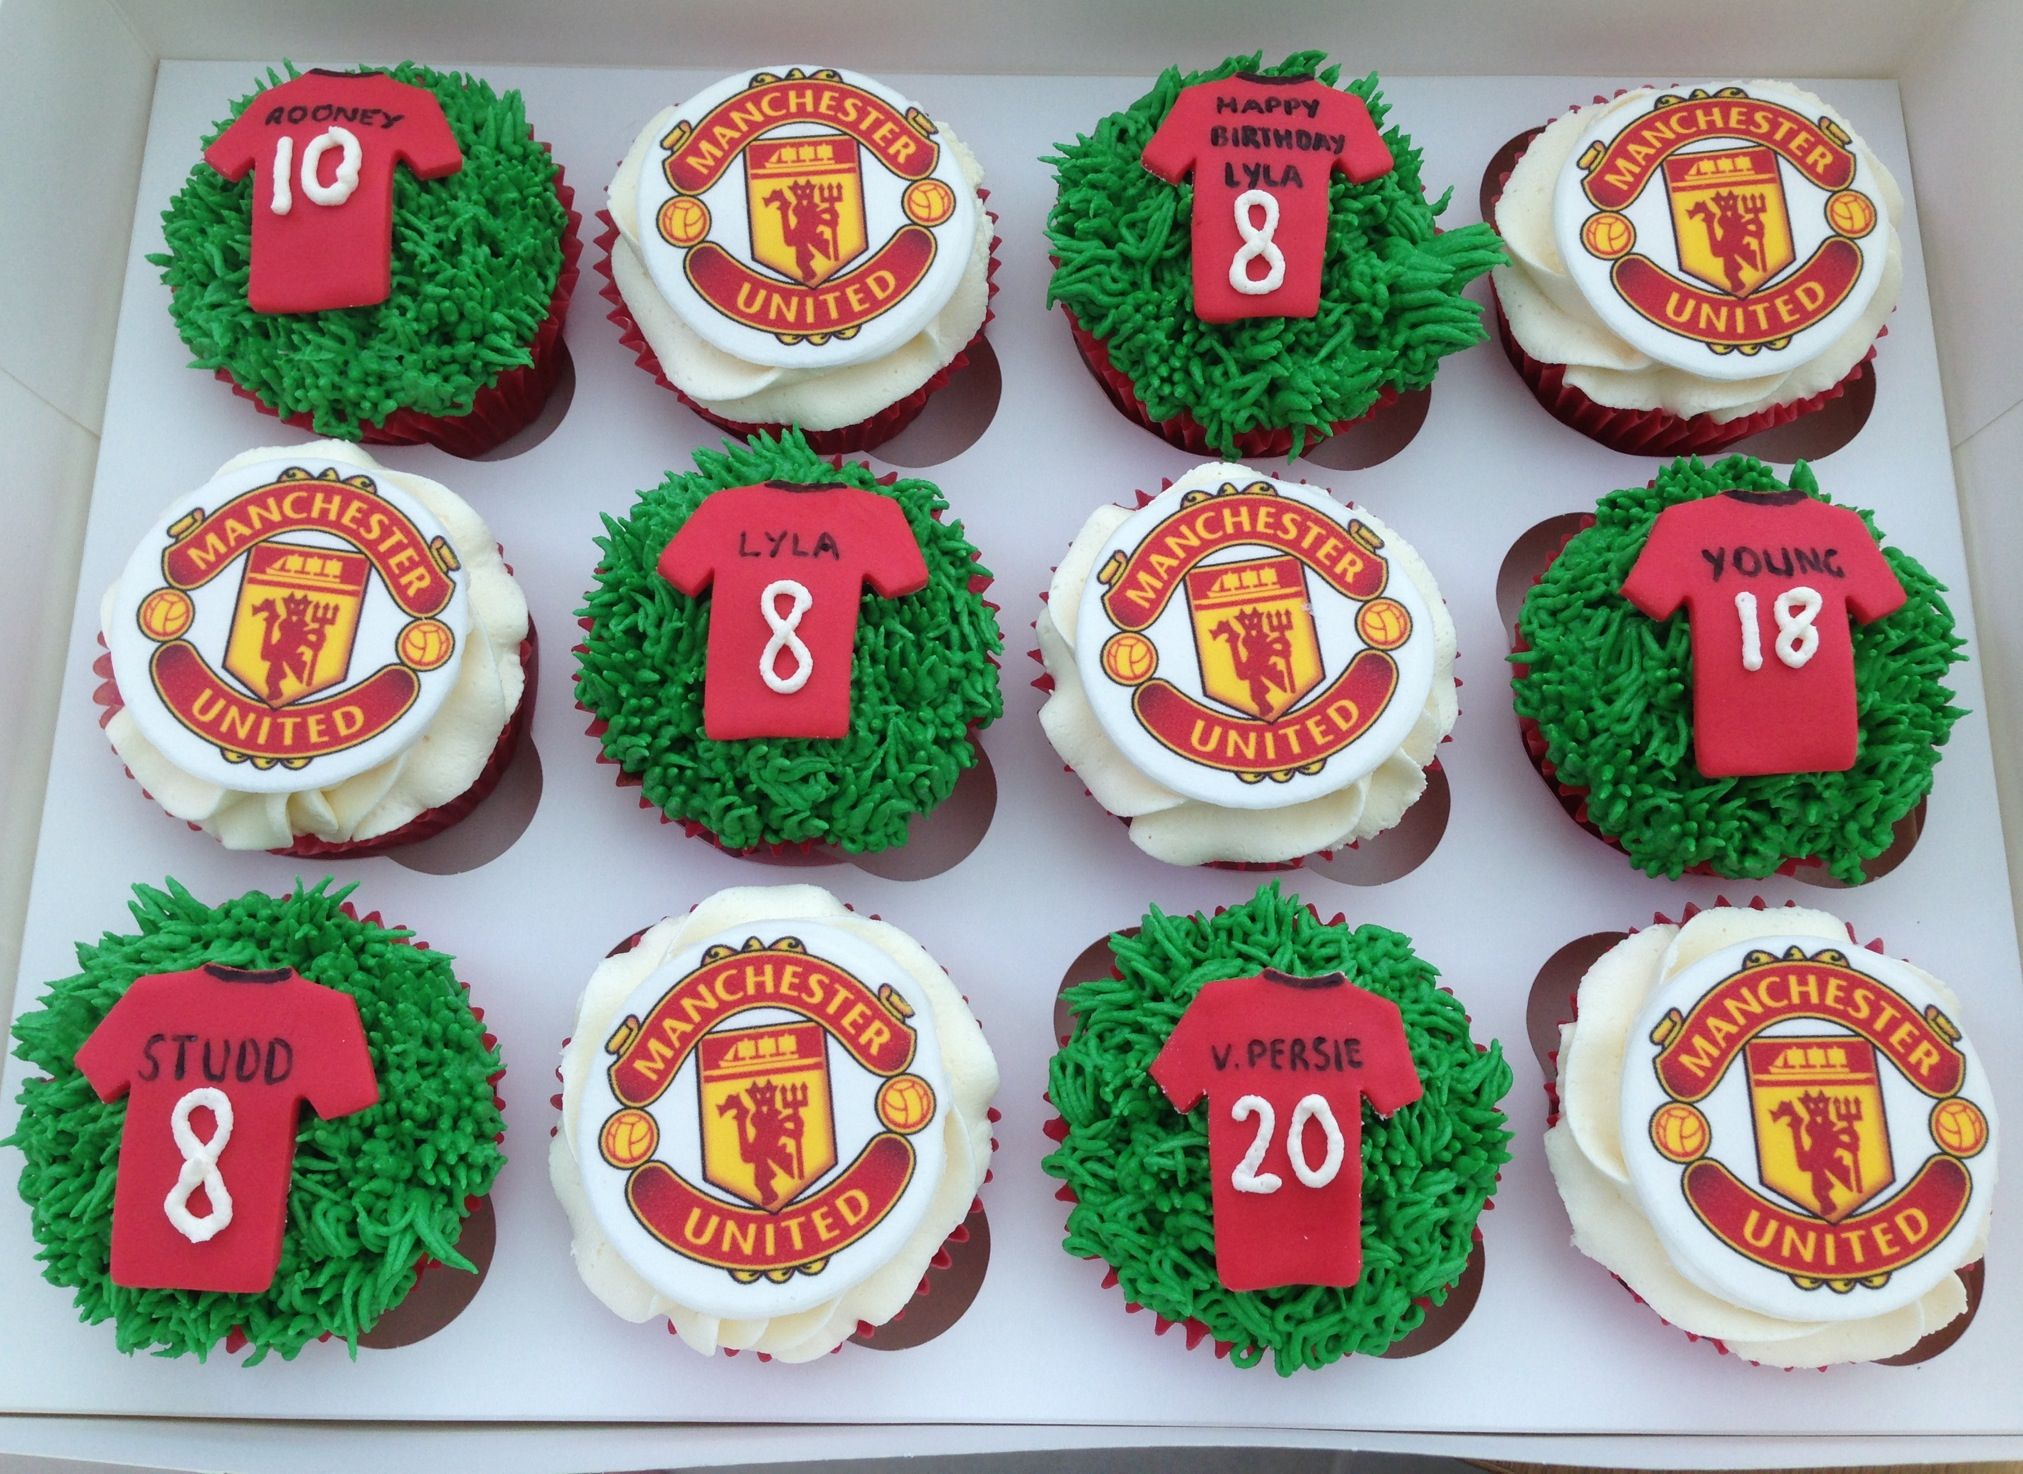 Man United Cakes Cake Design Cupcakes For Men Cake Pop Stands